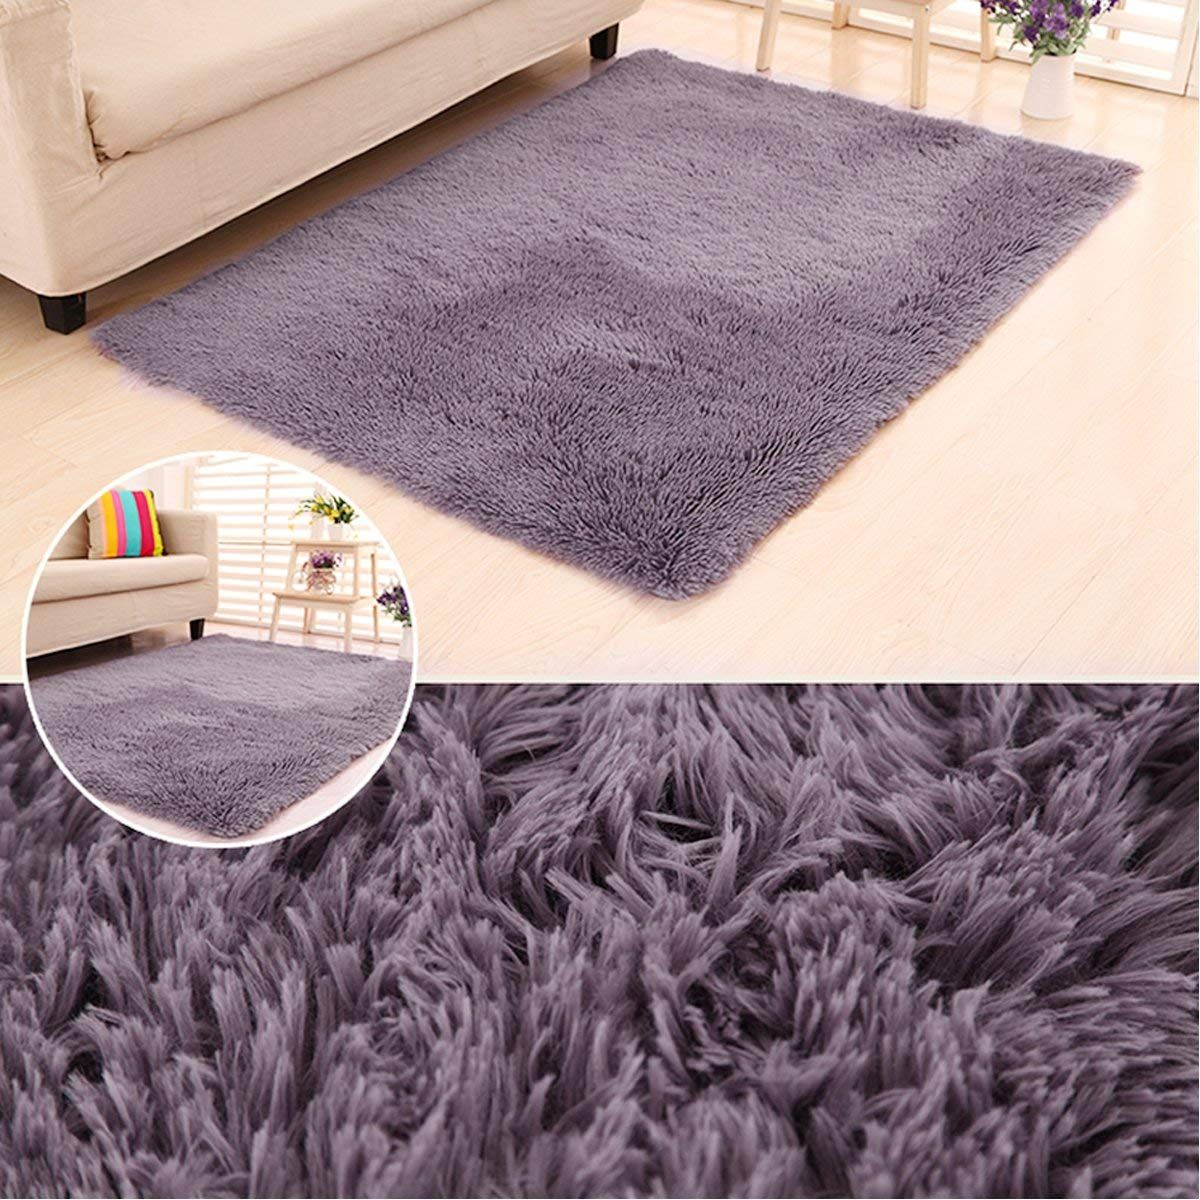 Amazon Com Lochas Soft Indoor Modern Area Rugs Fluffy Living Room Carpets Suitable For Children Bedr Living Room Area Rugs Living Room Carpet Modern Area Rugs #soft #area #rugs #for #living #room